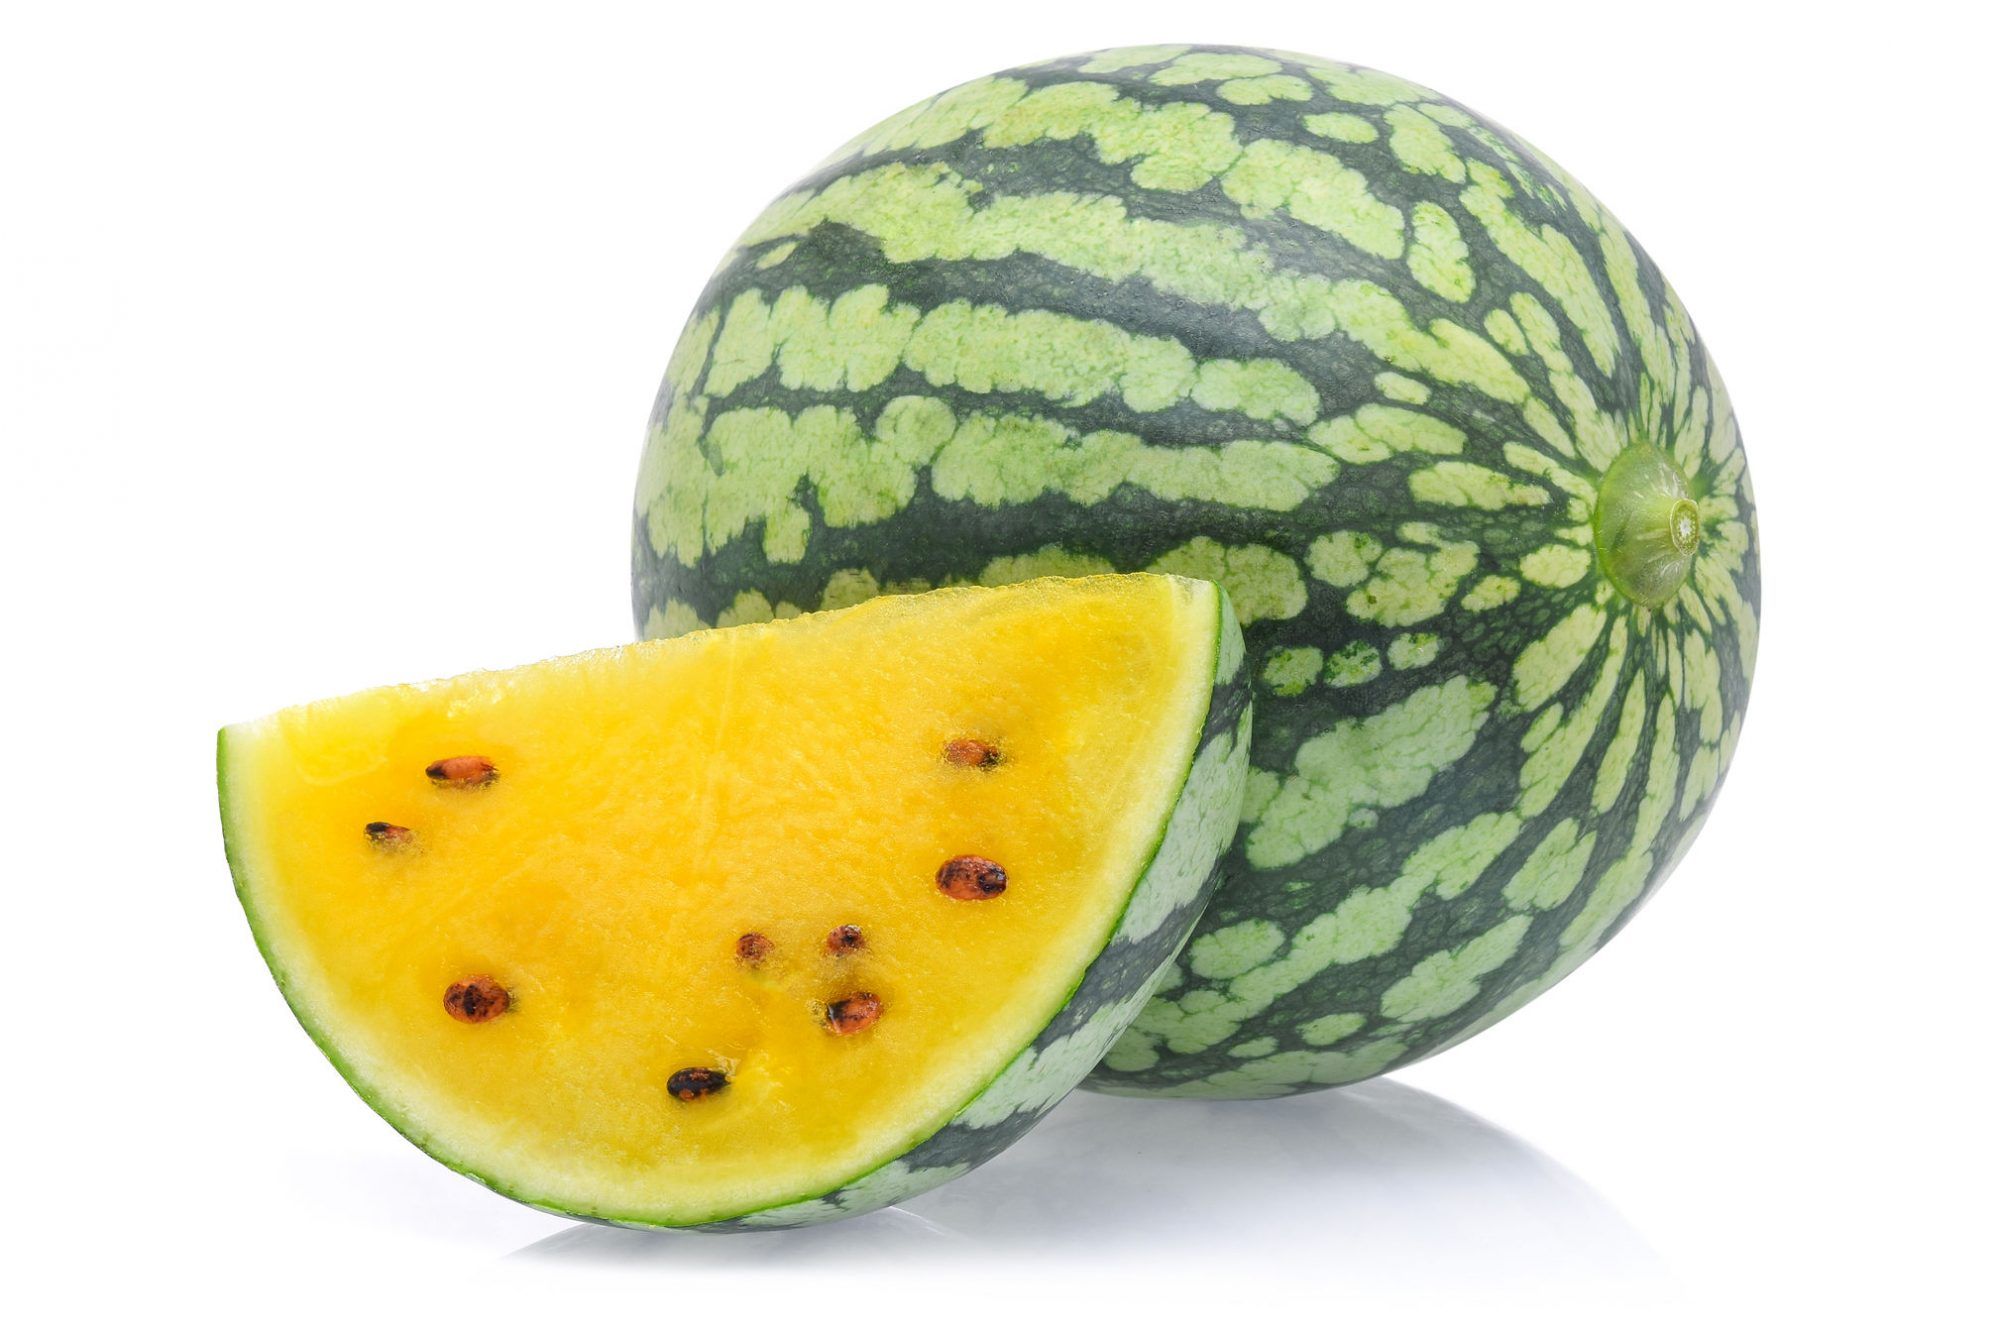 What Is a Yellow Watermelon?